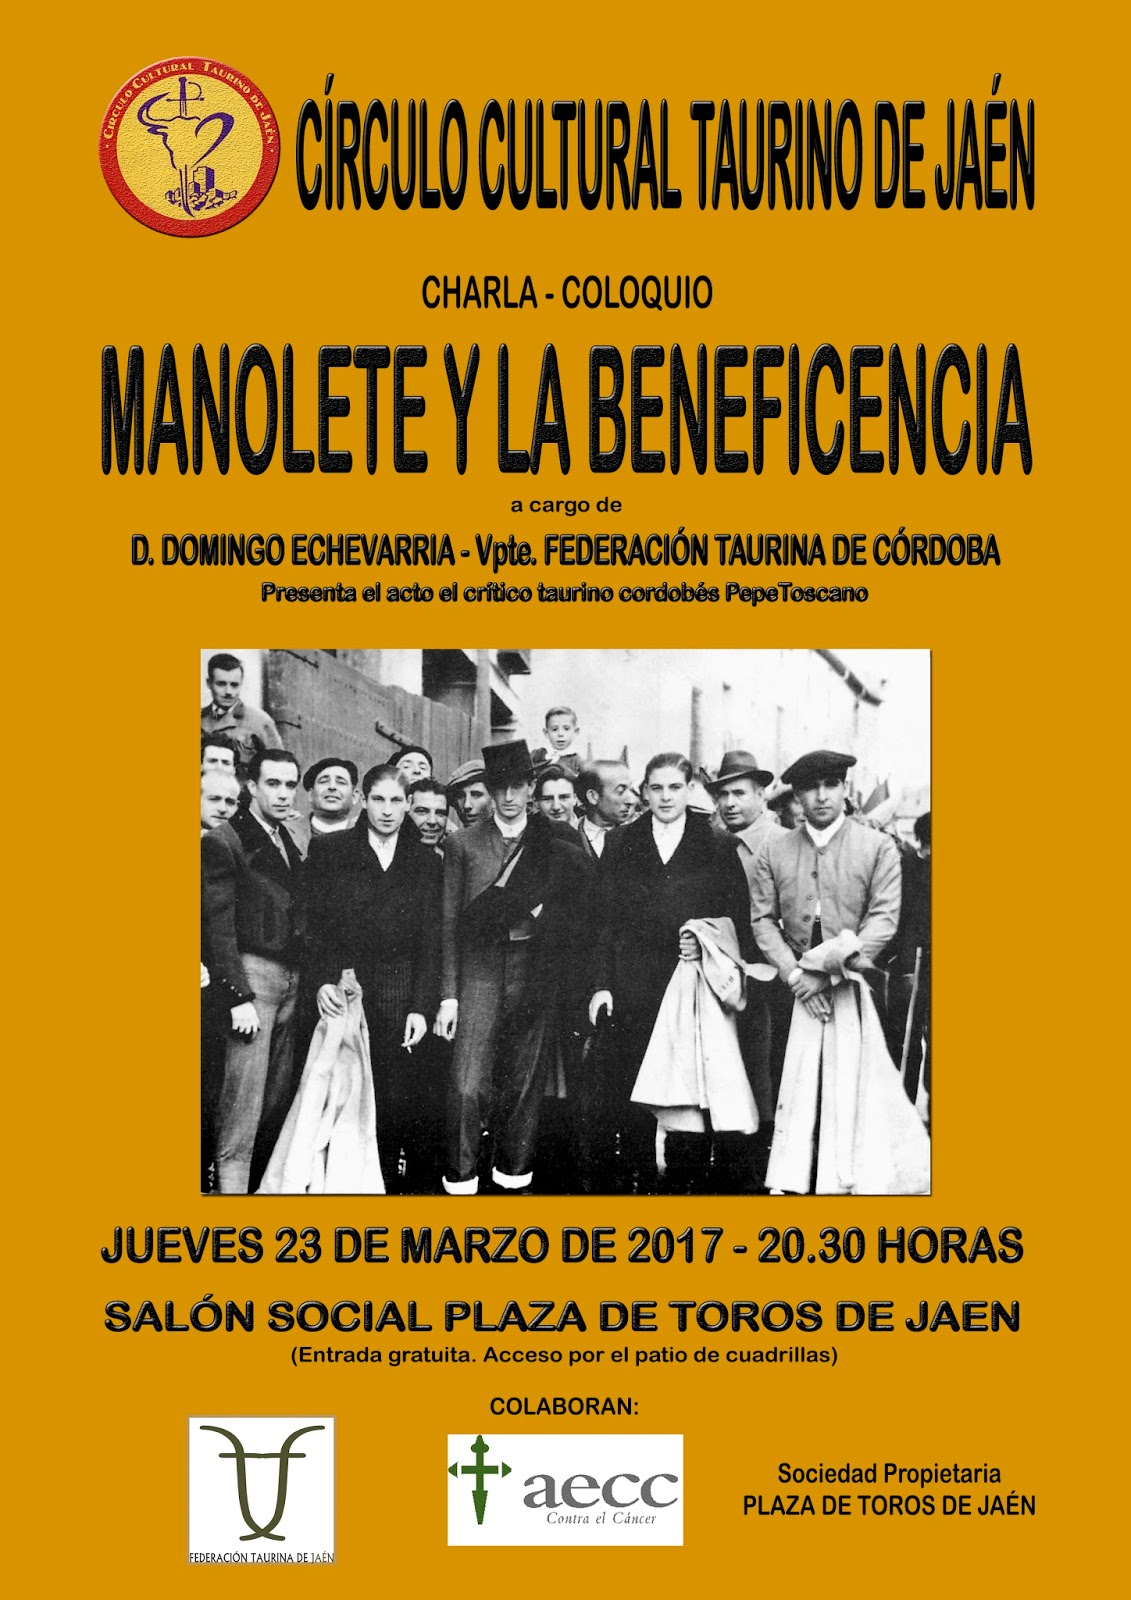 000a716 manolte y la beneficencia1